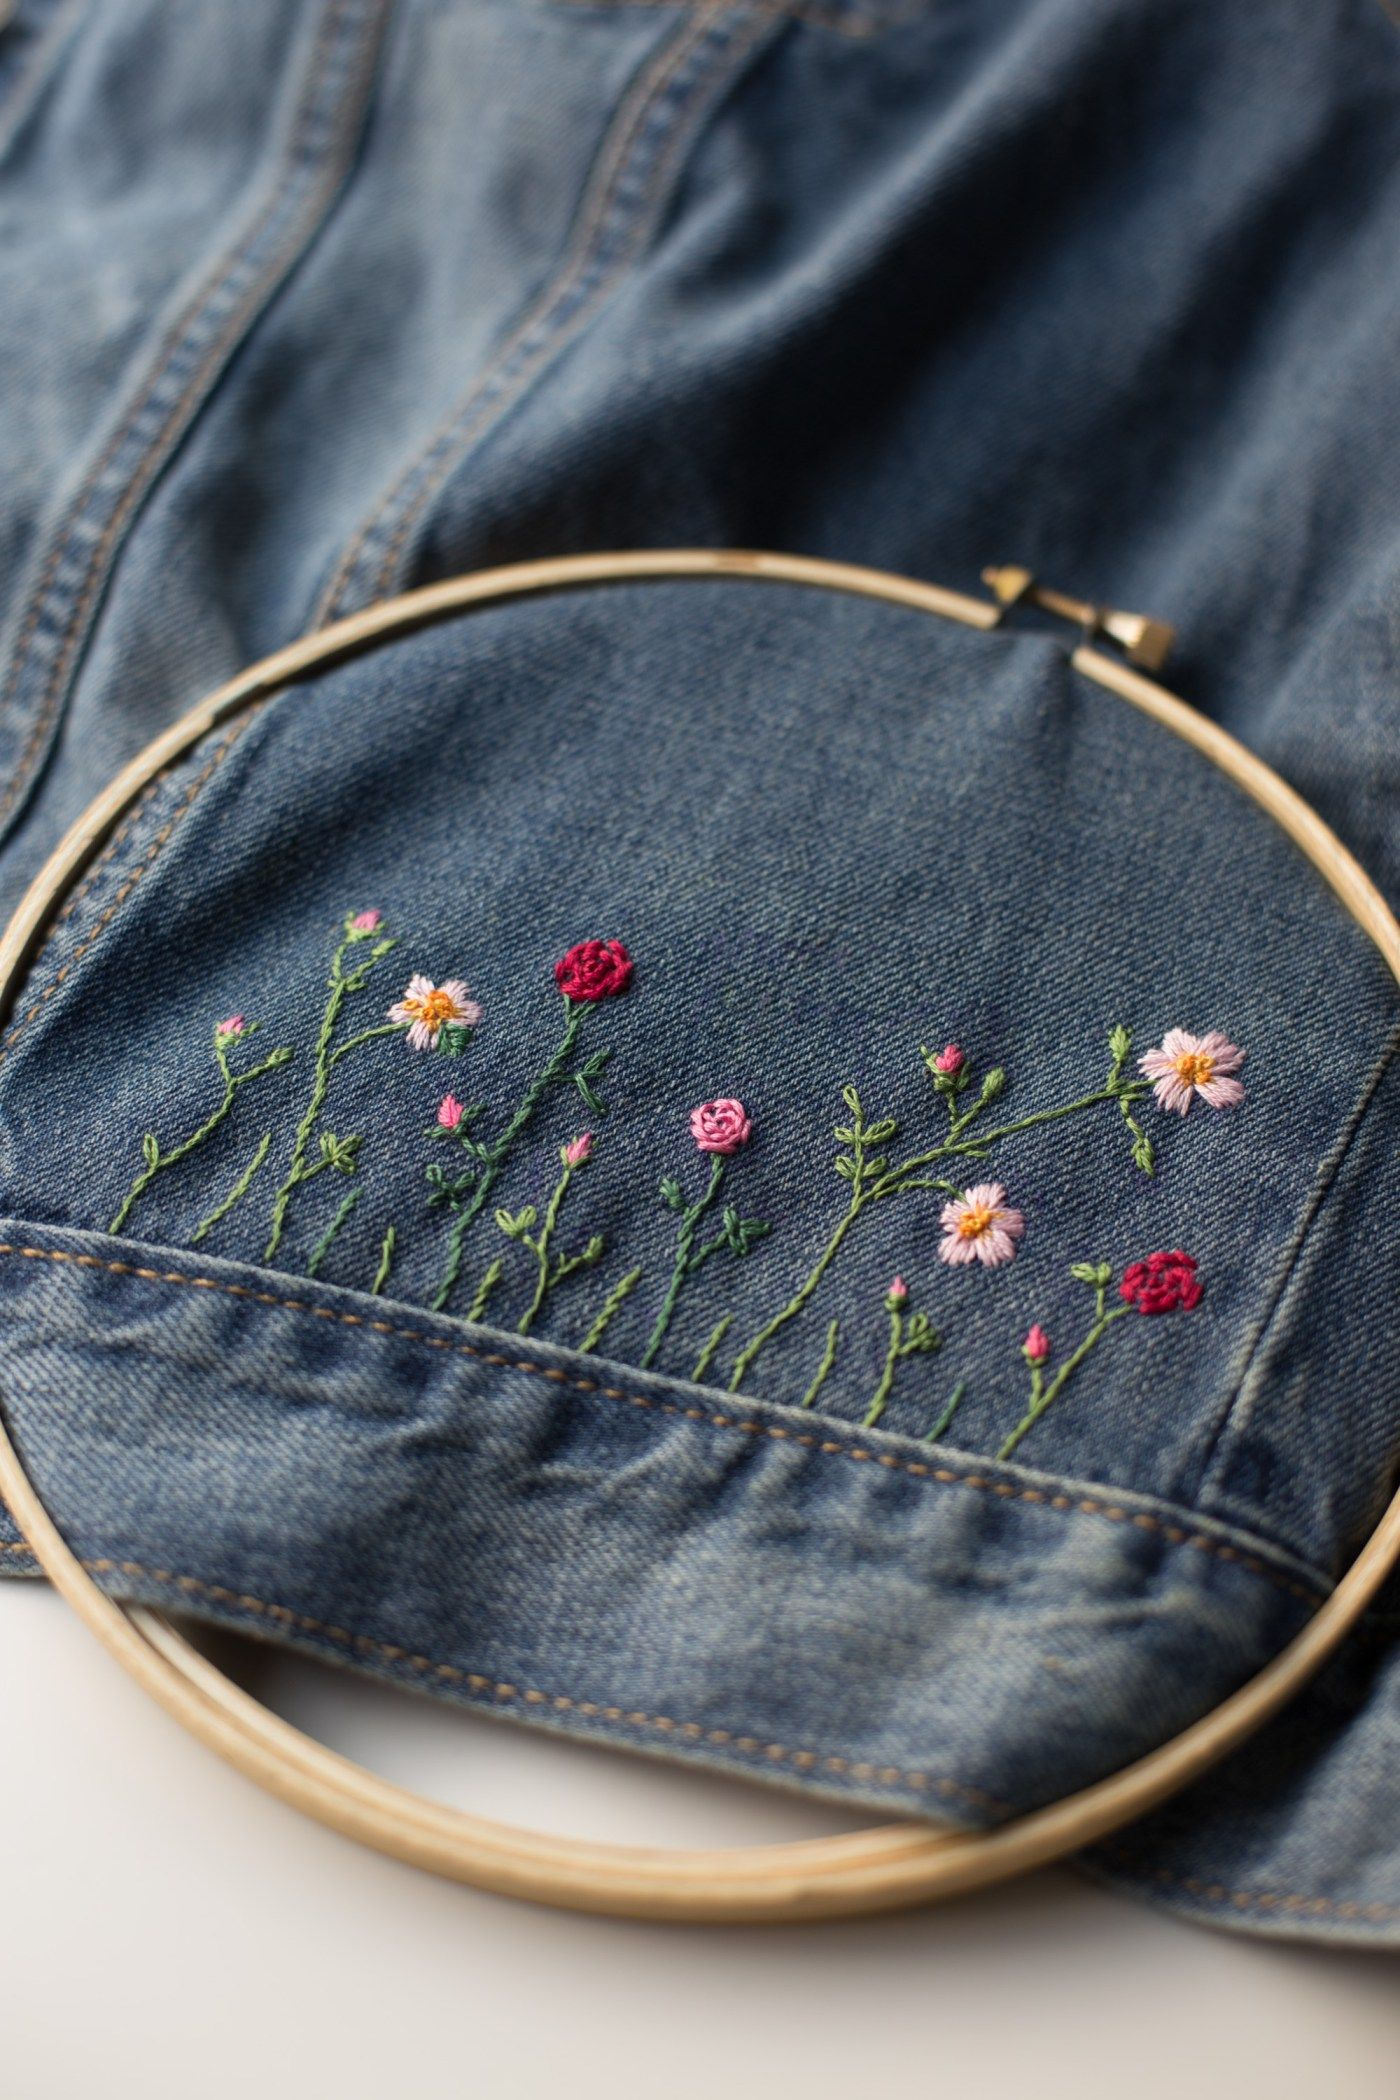 Make a Fabulous DIY Embellished Jean Jacket | Twine Finger knitting and Embroidery